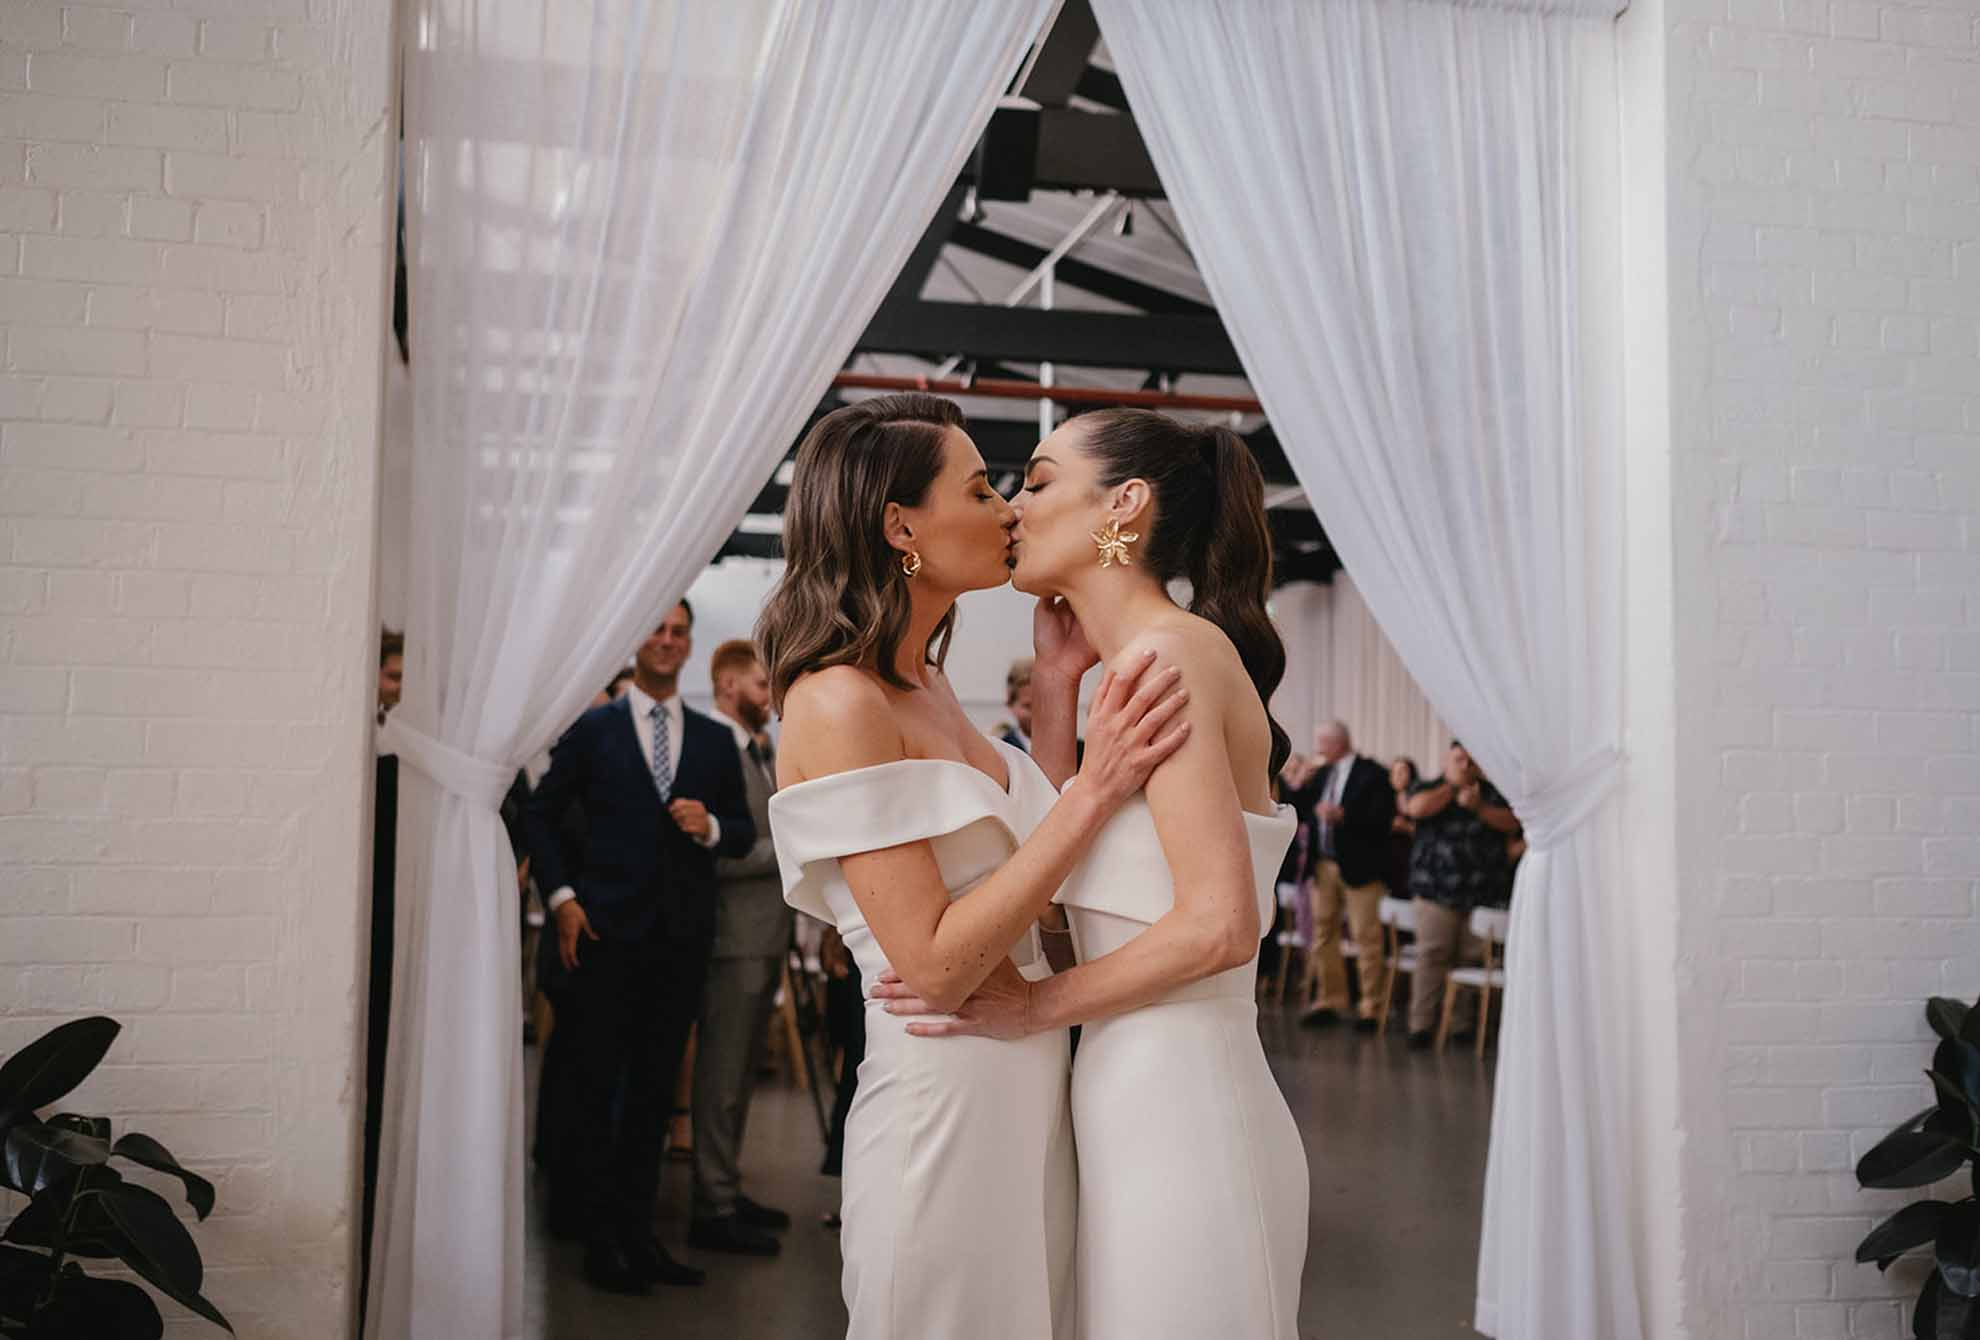 The Wool Mill by Nudo Brunswick Melbourne city lesbian gay LGBTQIA+ wedding elopement venue florist planners Dancing With Her magazine